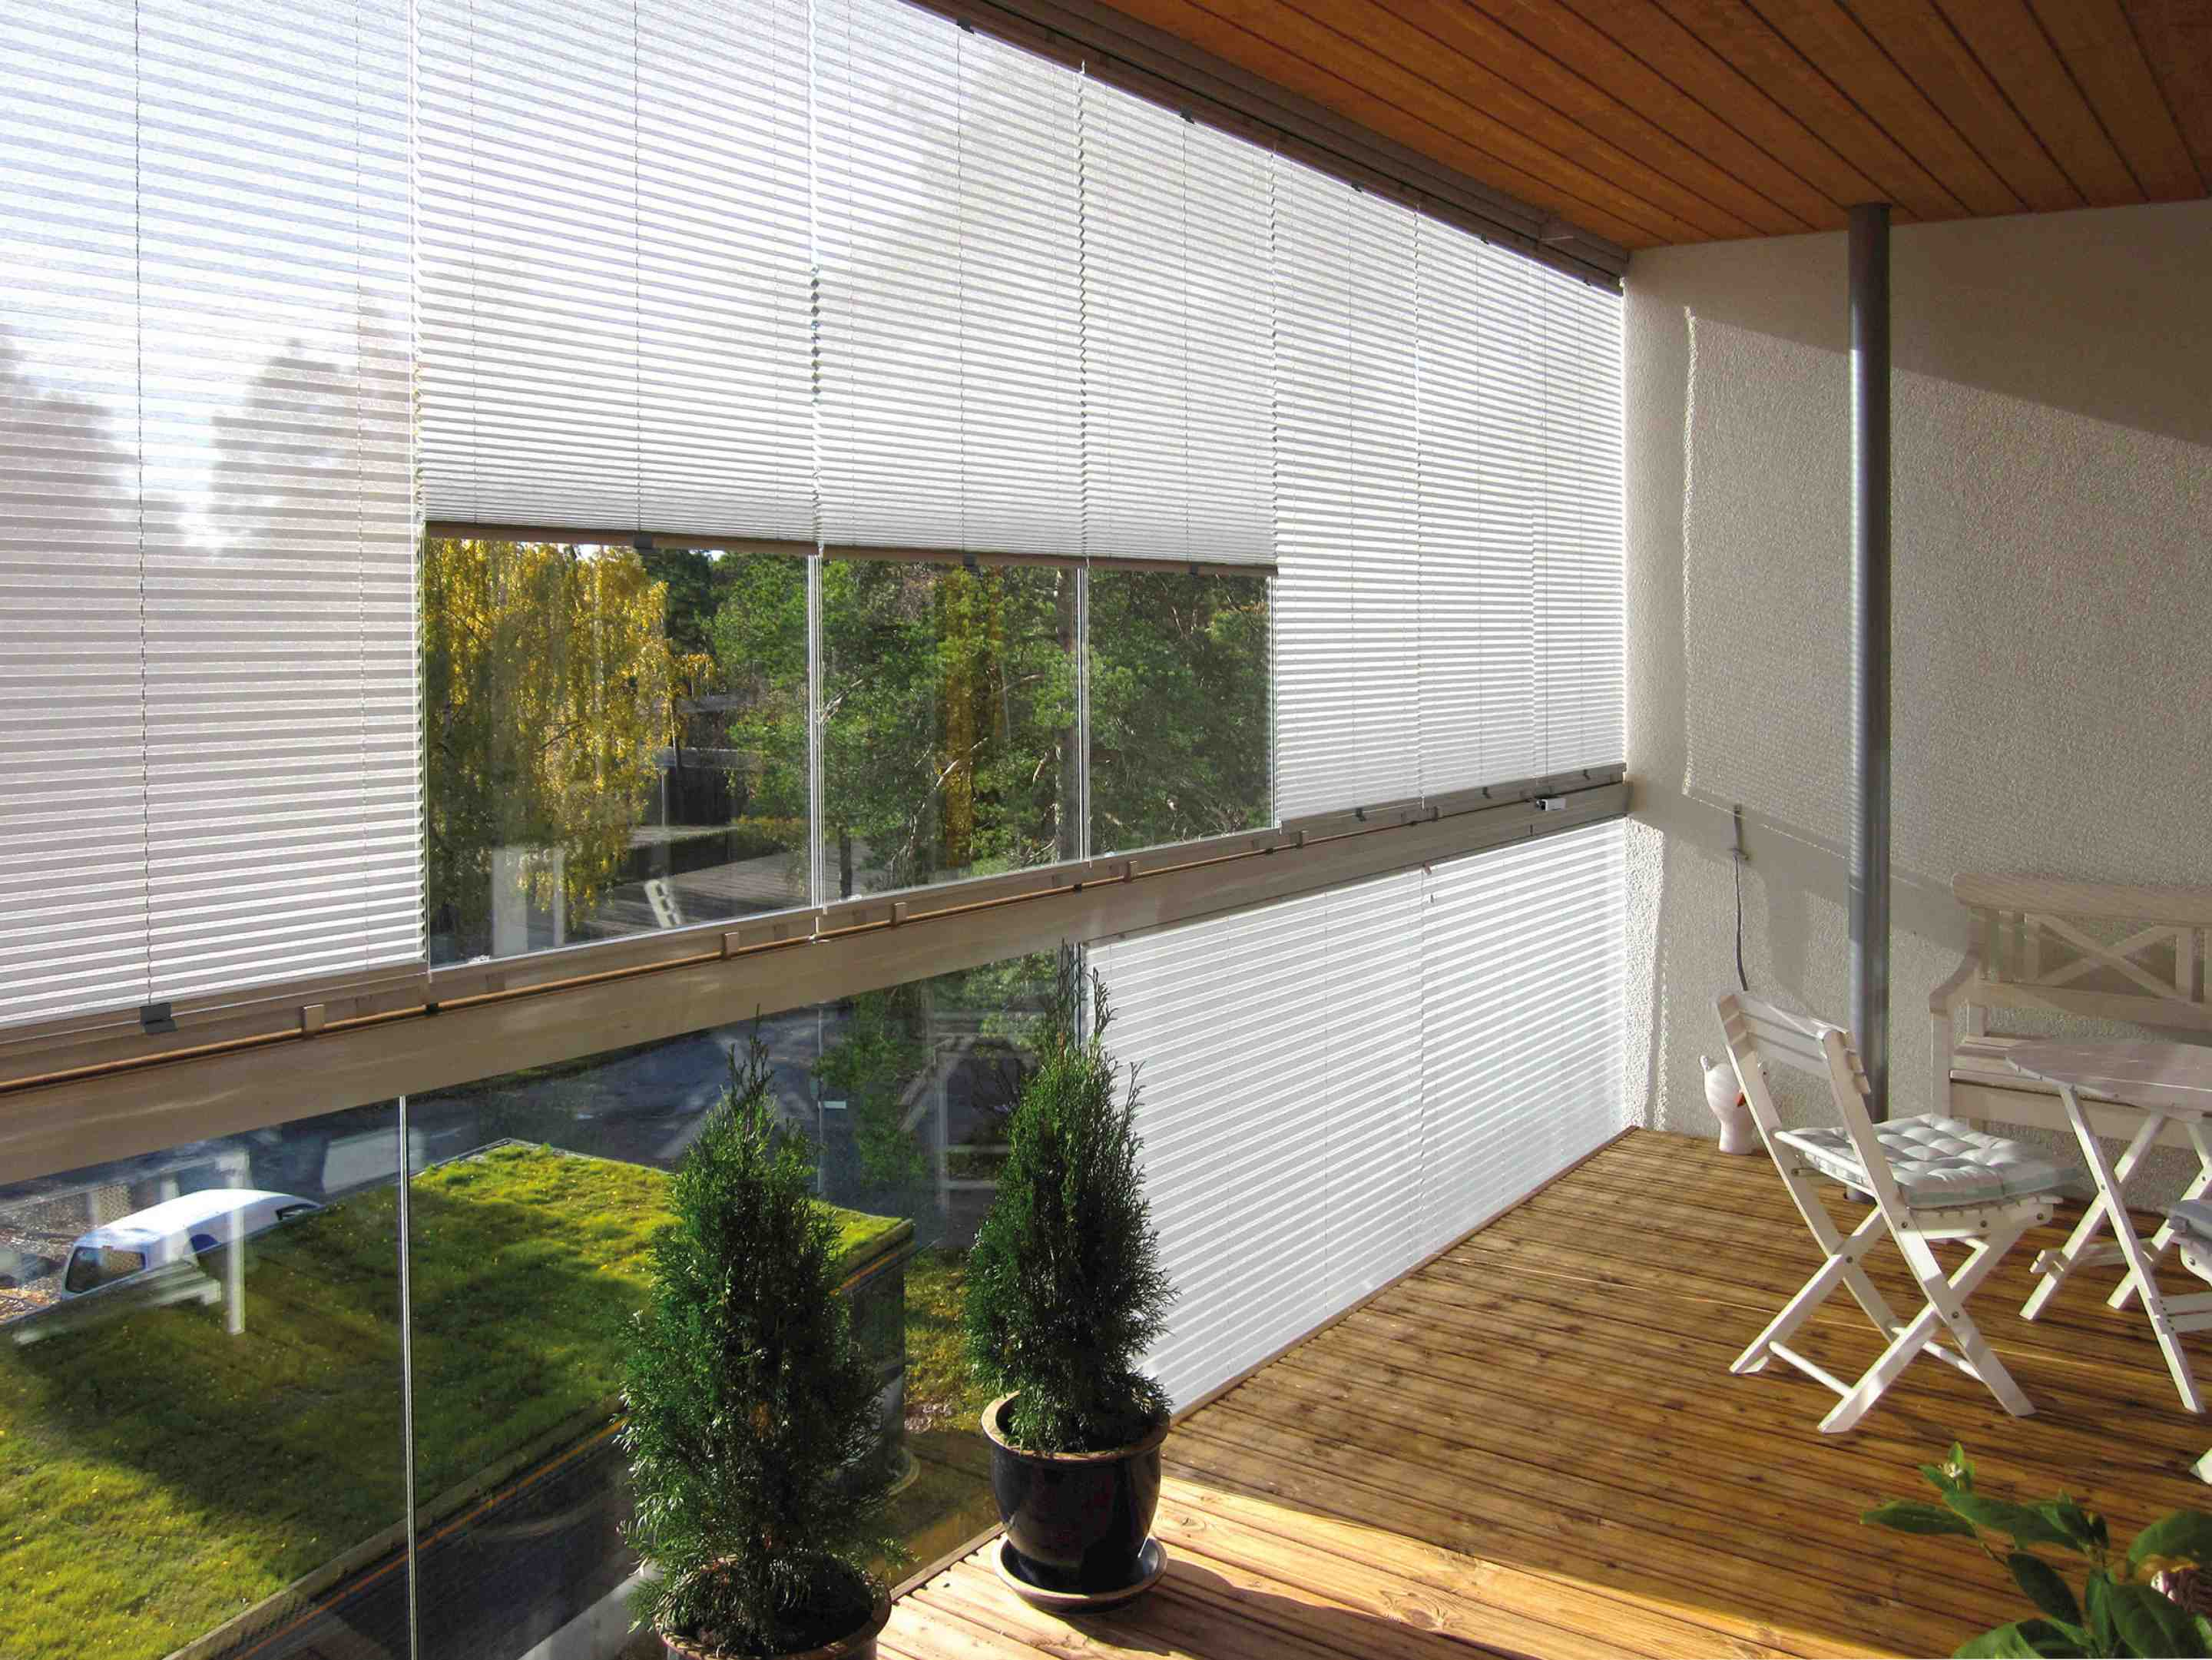 custom made blinds, blind installation service, balcony blinds toronto, window pleated blinds, quality blinds, window shutters, window blinds